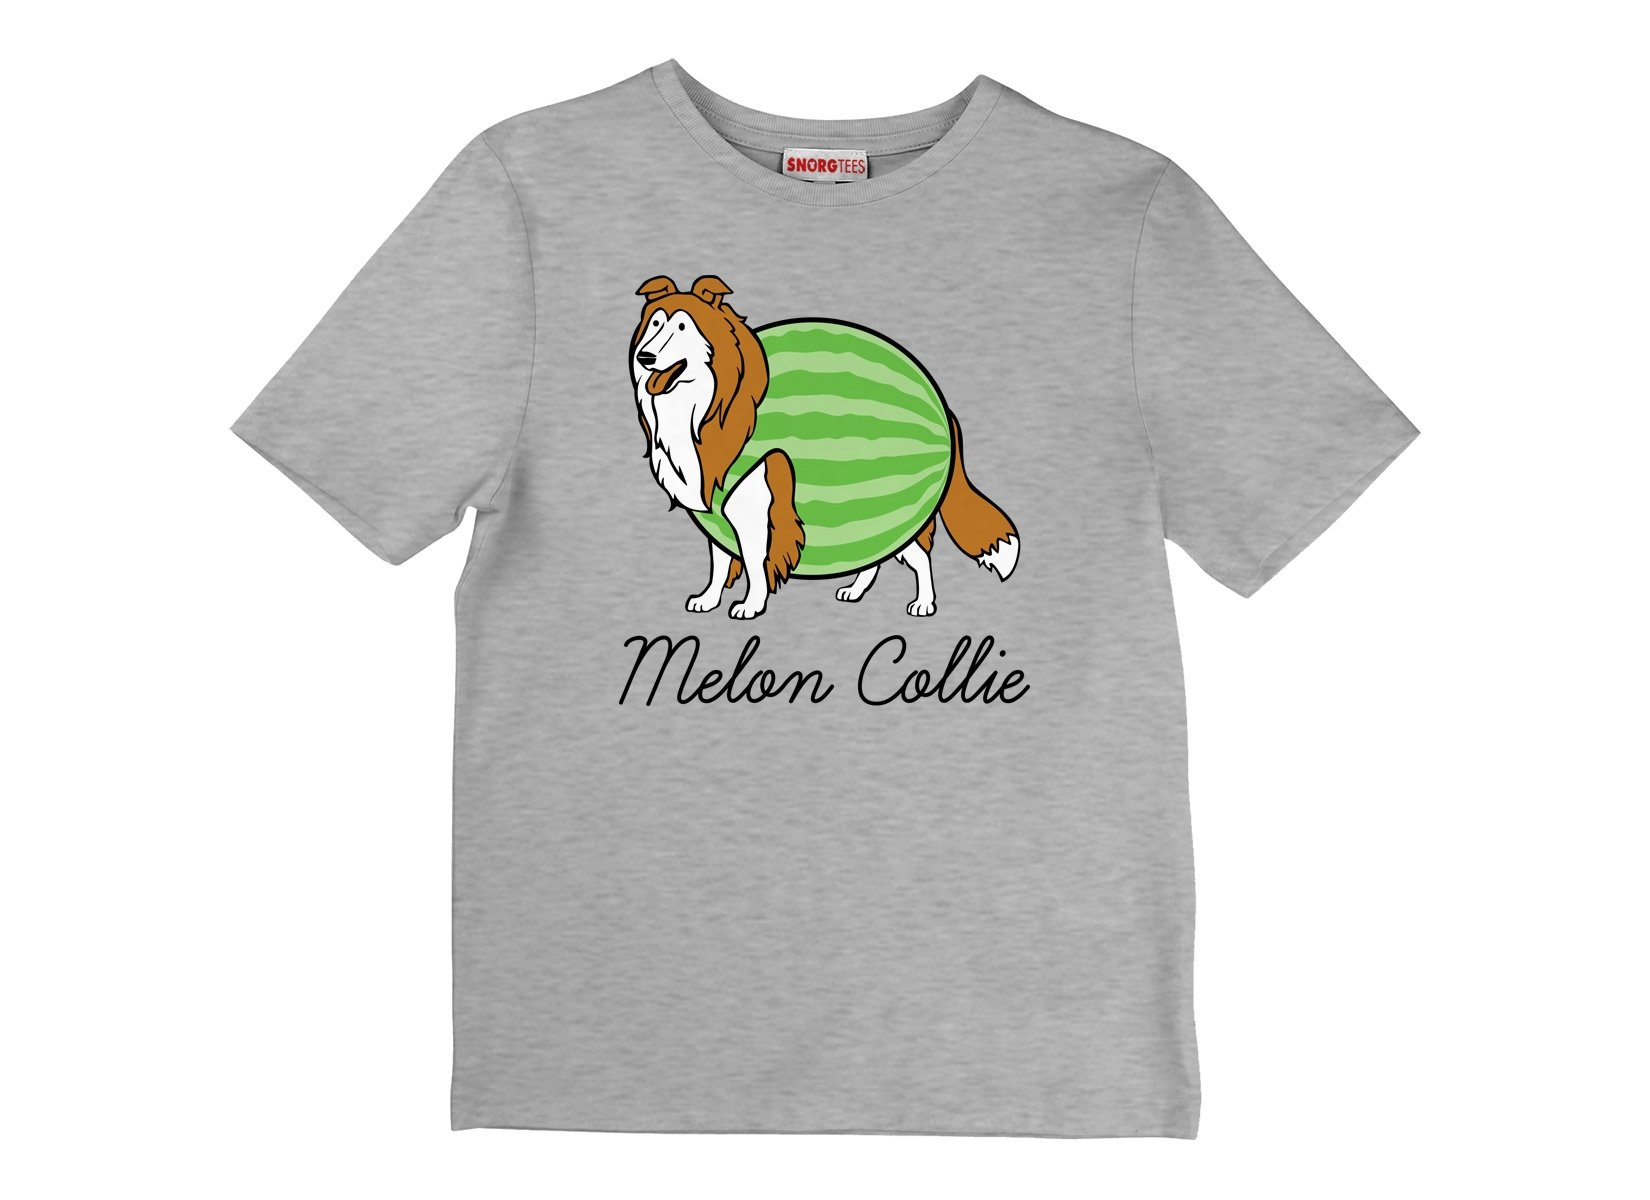 Melon Collie on Kids T-Shirt